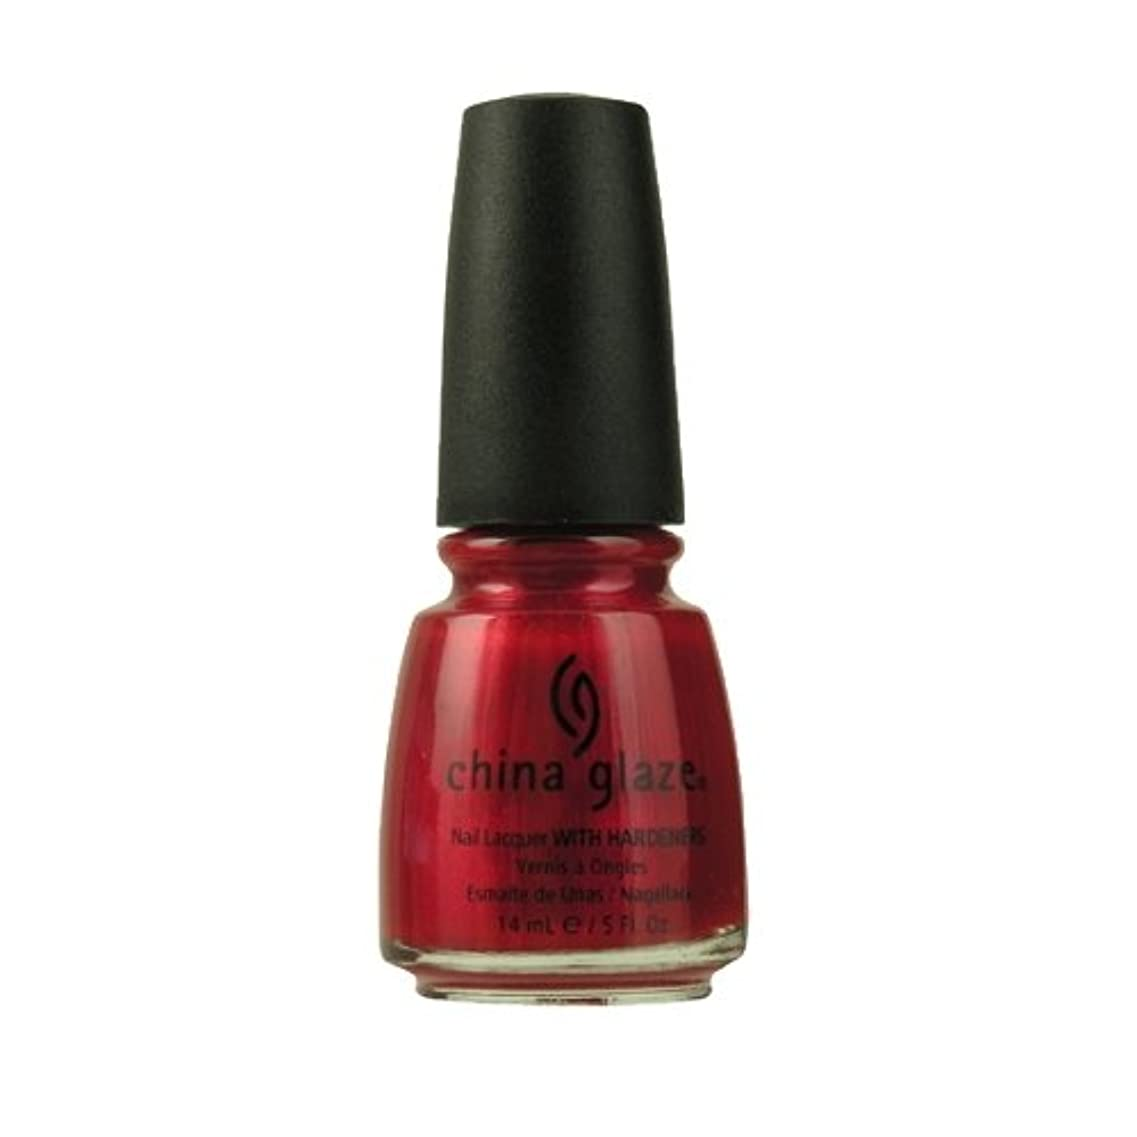 CHINA GLAZE Nail Lacquer with Nail Hardner - Red Pearl (並行輸入品)